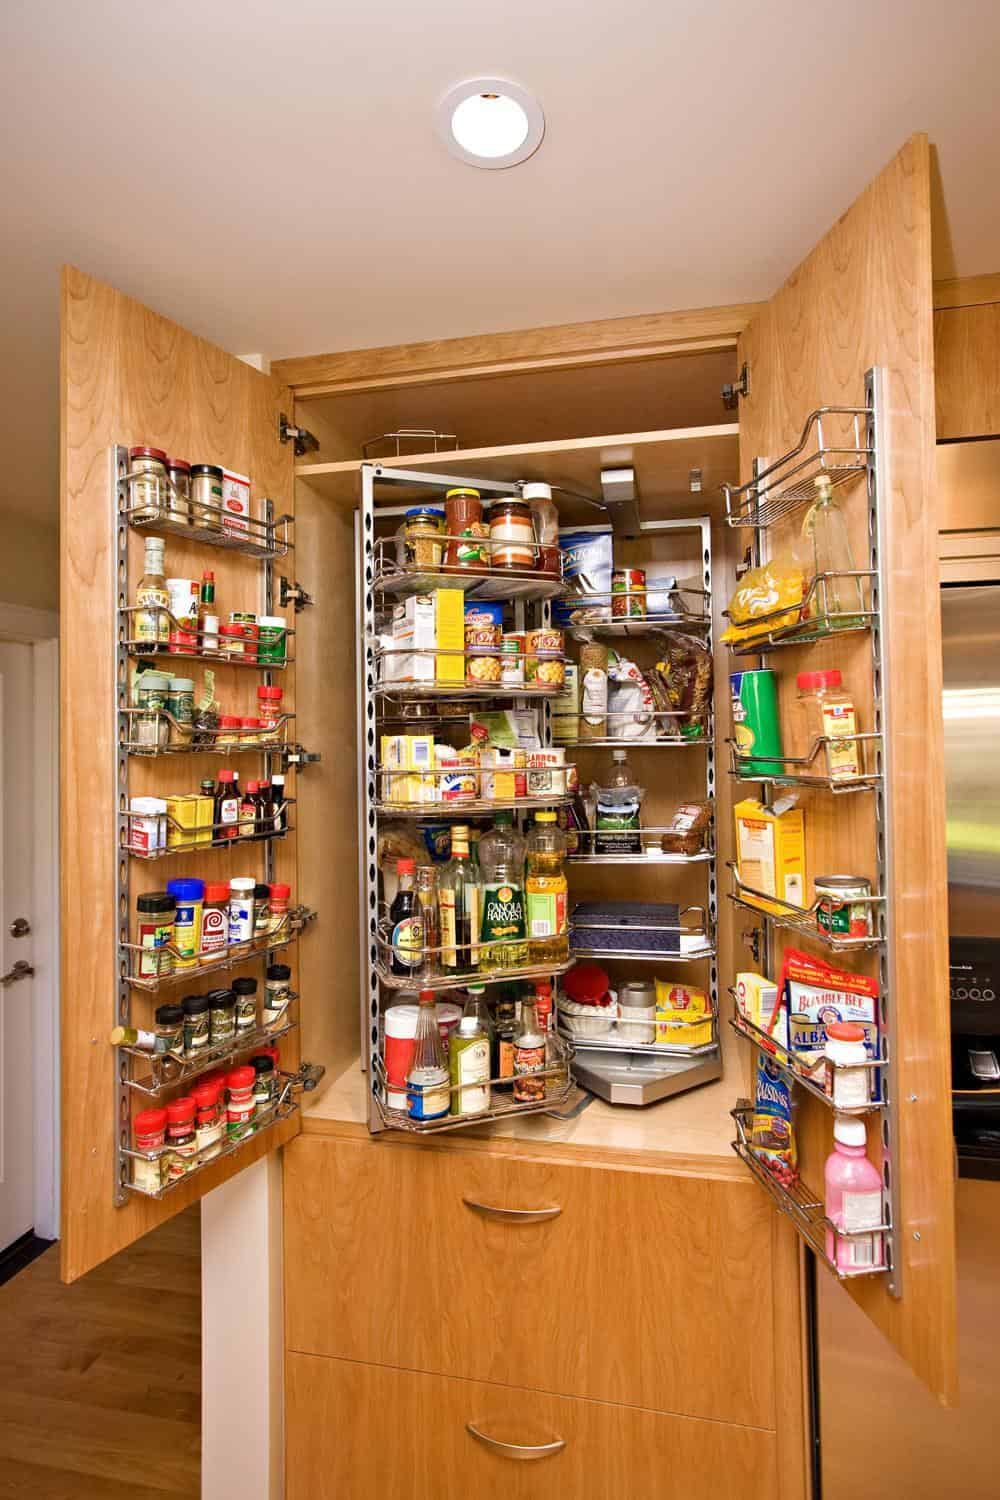 Stock Room Design: 19 Smart Kitchen Storage Ideas That Will Impress You